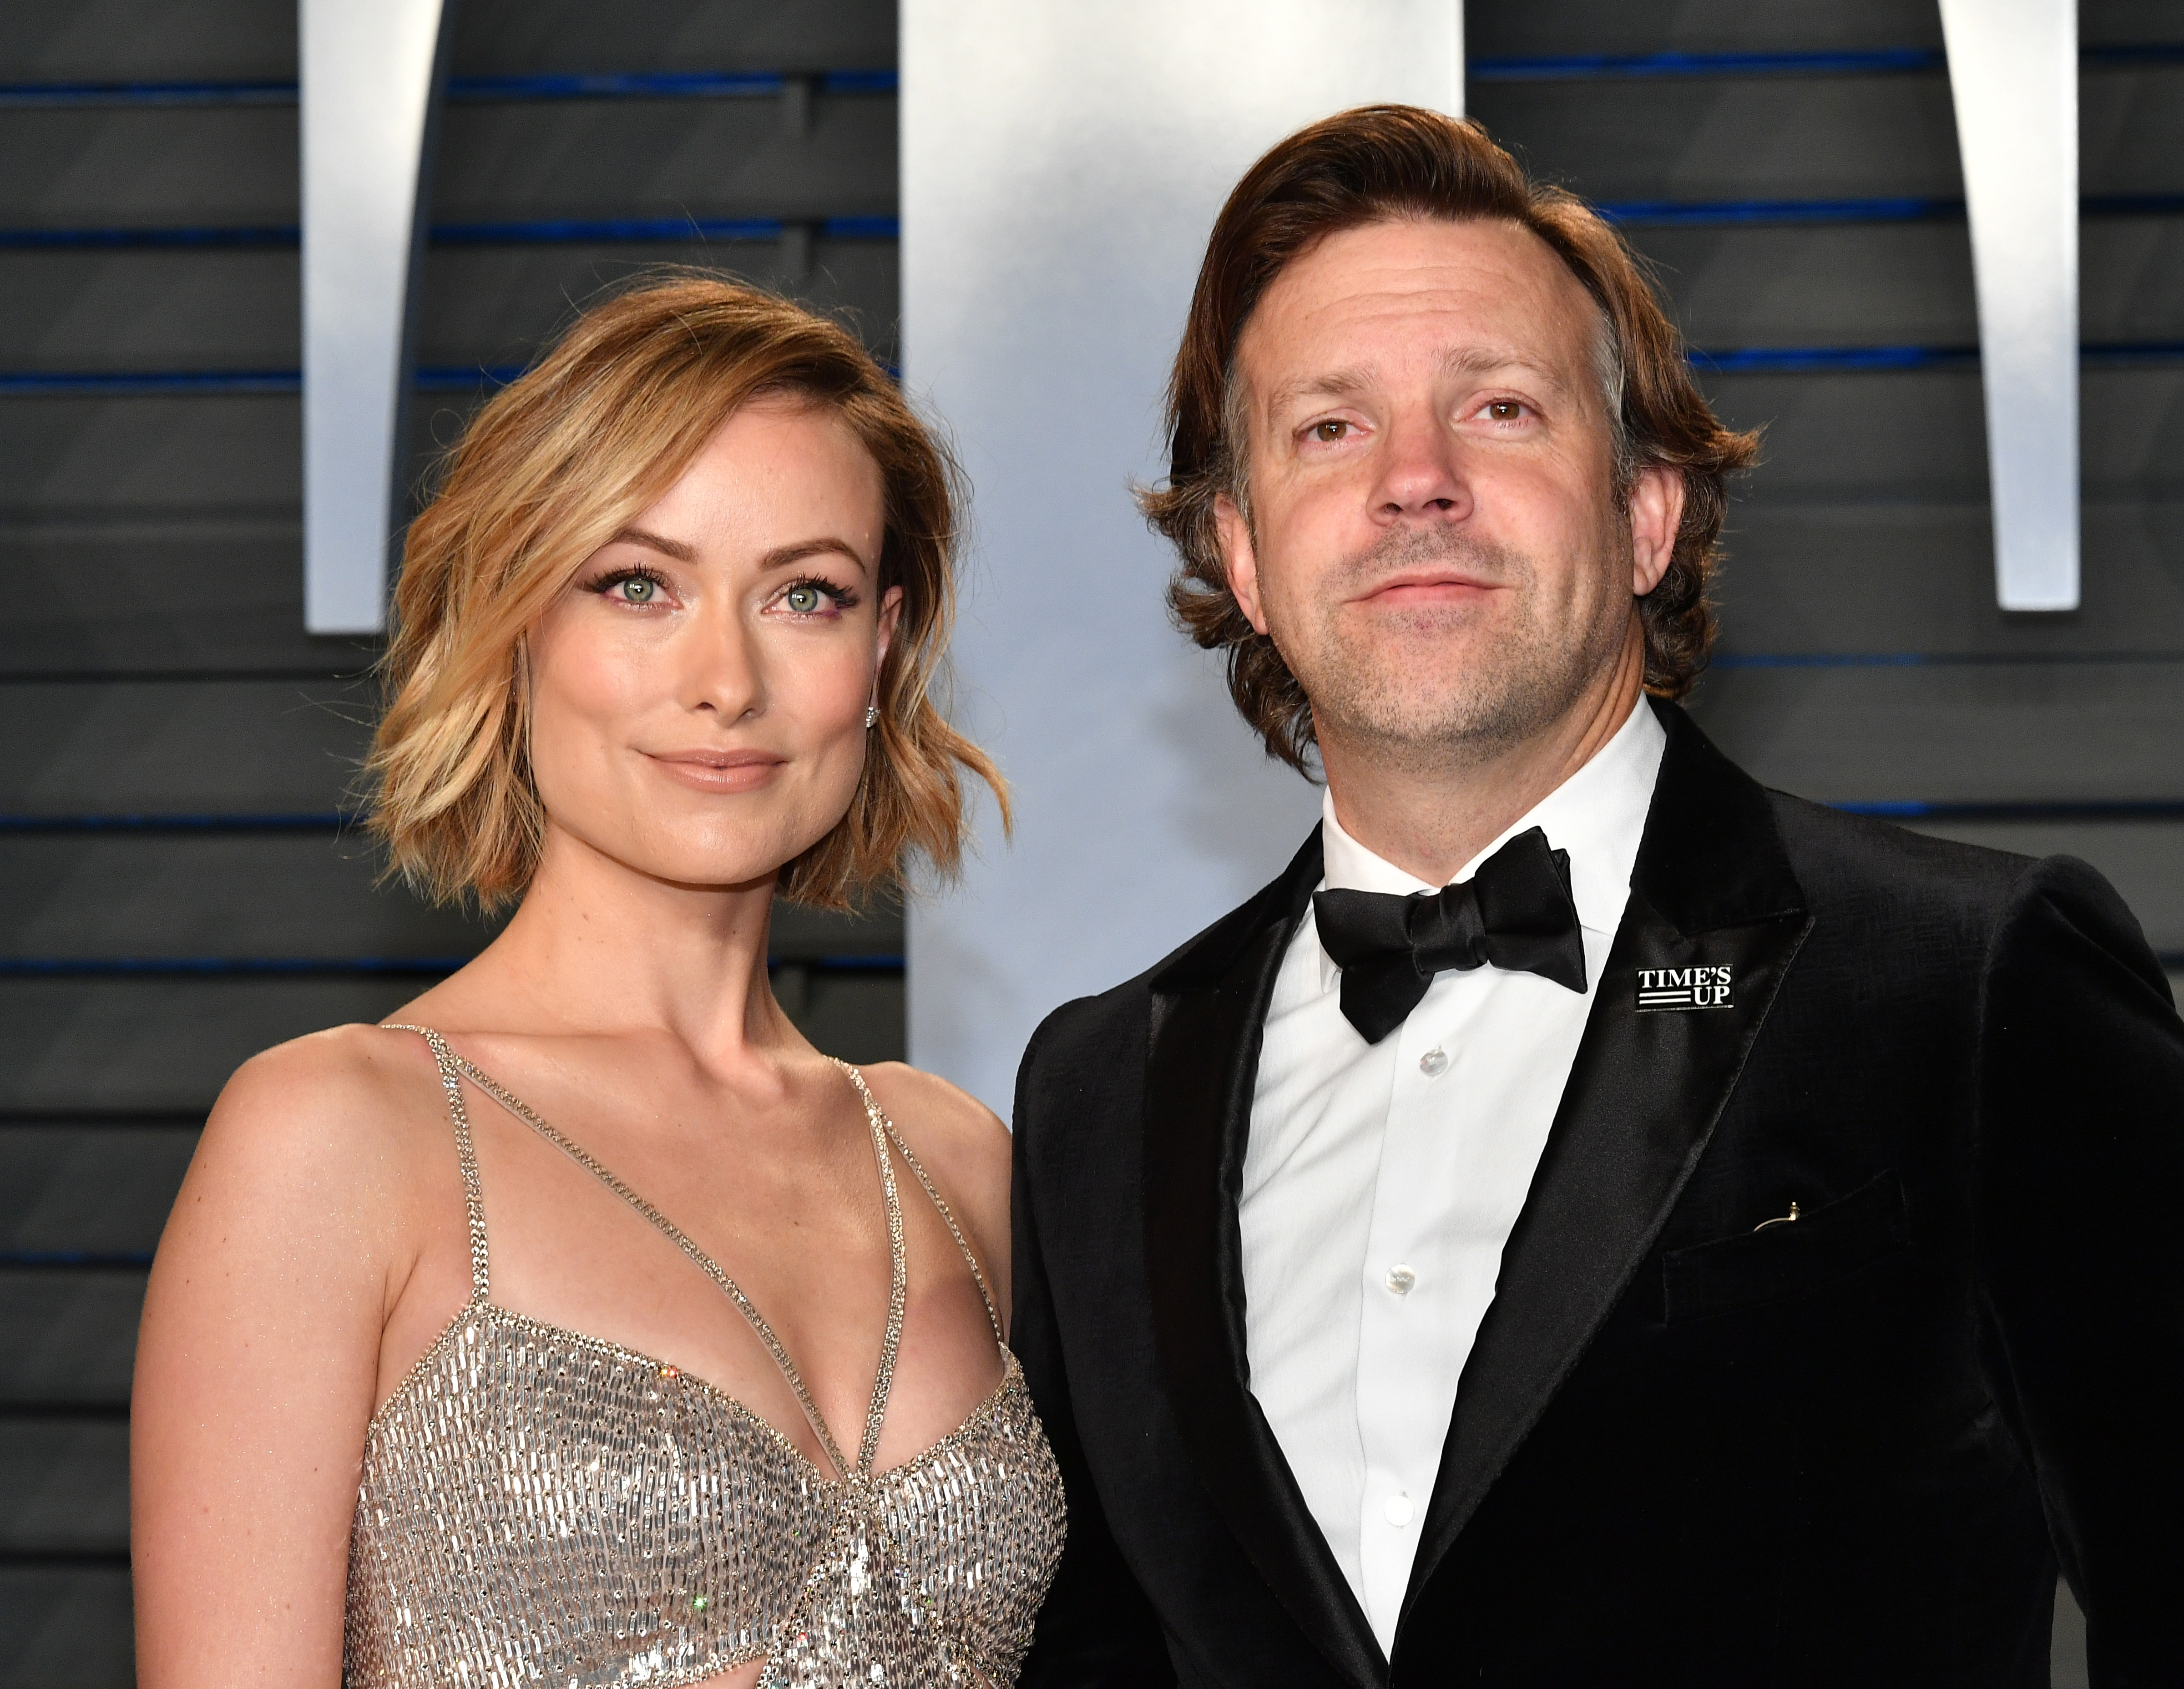 BEVERLY HILLS, CA - MARCH 04:  Olivia Wilde (L) and Jason Sudeikis attend the 2018 Vanity Fair Oscar Party hosted by Radhika Jones at Wallis Annenberg Center for the Performing Arts on March 4, 2018 in Beverly Hills, California.  (Photo by Dia Dipasupil/Getty Images)